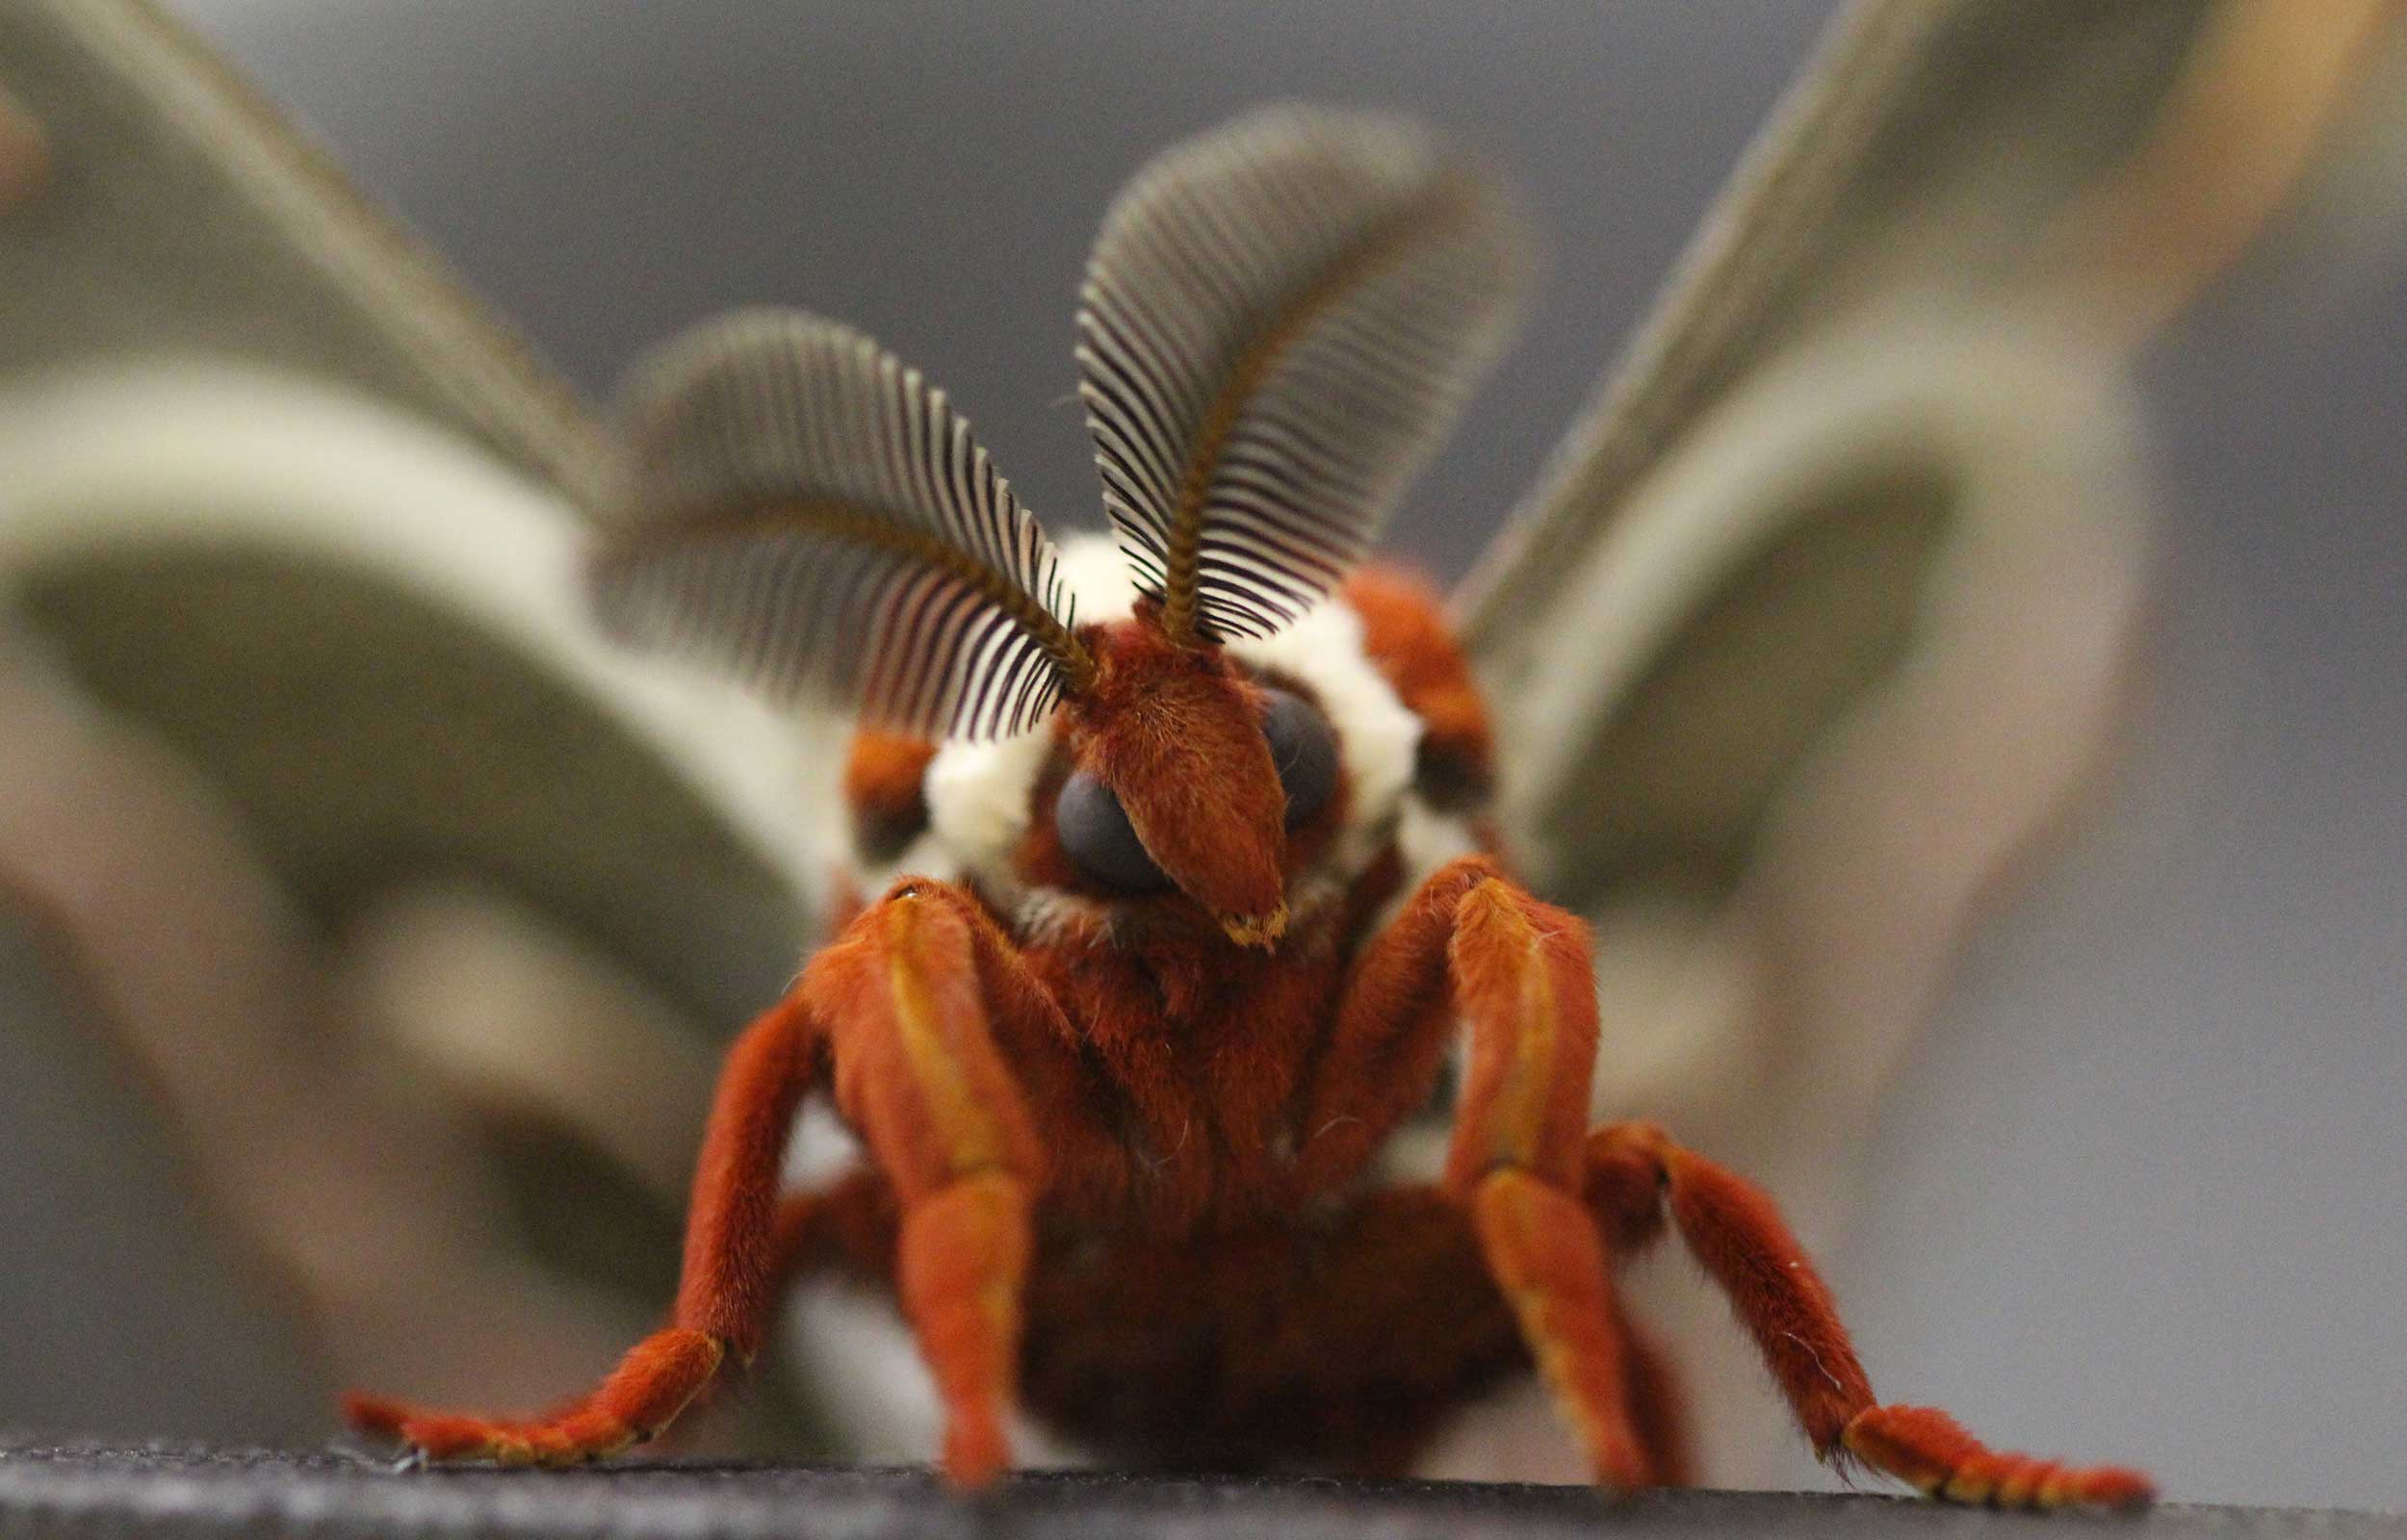 close up of a cecropia moth 2021 research photo 3rd place winner